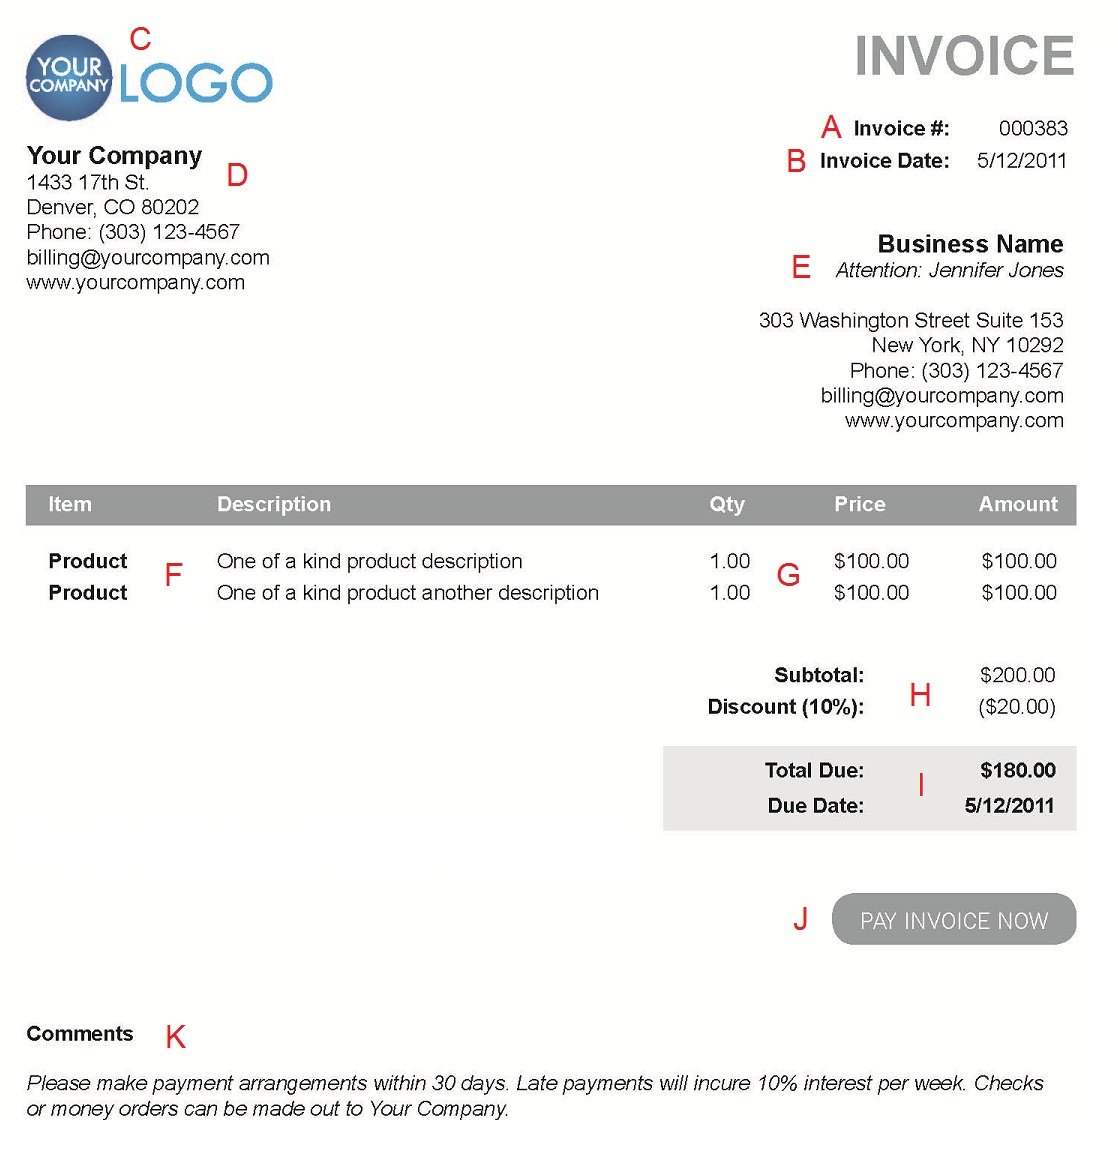 Floobydustus  Wonderful The  Different Sections Of An Electronic Payment Invoice With Fetching A  With Alluring Invoice Scanning Solutions Also Dealer Invoice Pricing On New Cars In Addition Gst Invoice Requirements And Limited Company Invoice As Well As Automatic Invoice Generator Additionally Invoice Software Australia From Paysimplecom With Floobydustus  Fetching The  Different Sections Of An Electronic Payment Invoice With Alluring A  And Wonderful Invoice Scanning Solutions Also Dealer Invoice Pricing On New Cars In Addition Gst Invoice Requirements From Paysimplecom